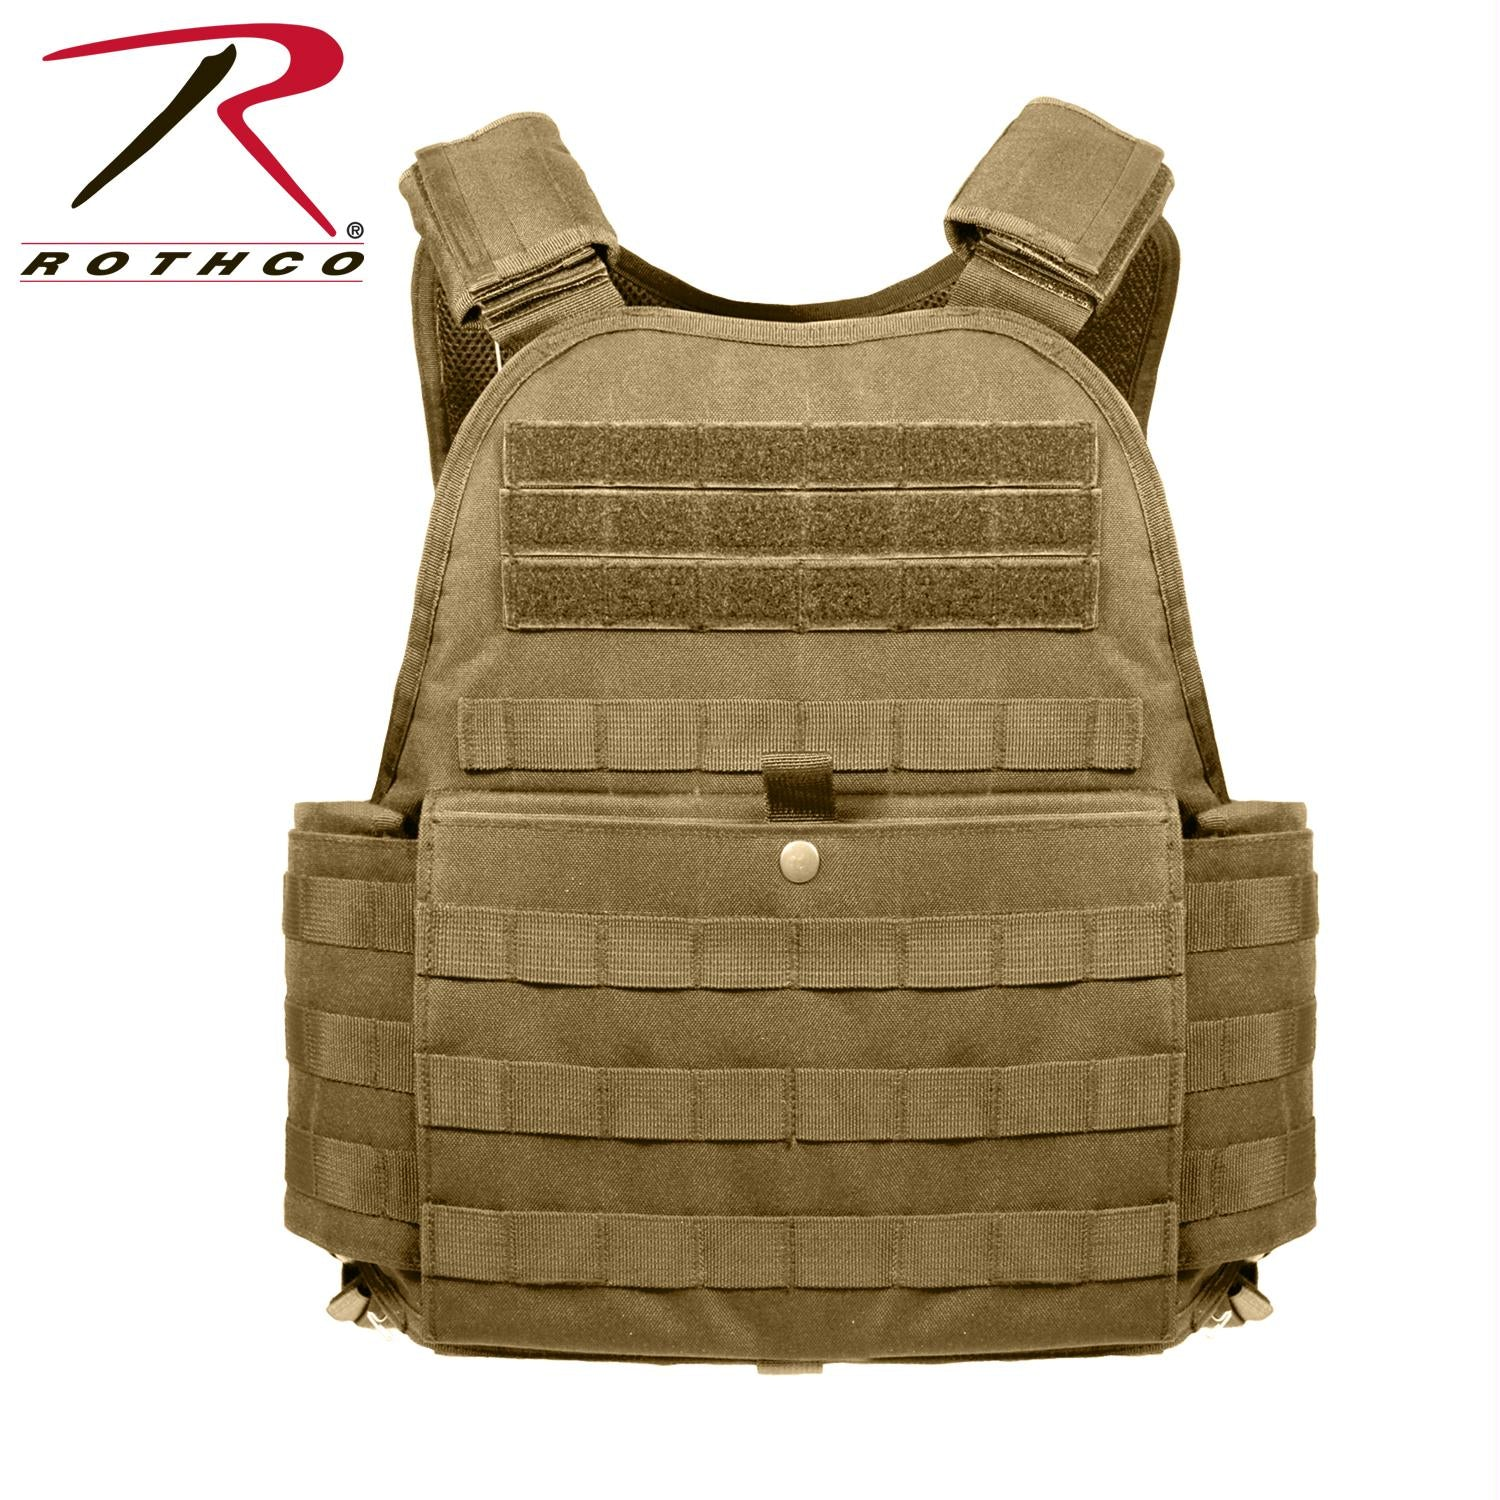 Rothco MOLLE Plate Carrier Vest - Coyote Brown / Oversized